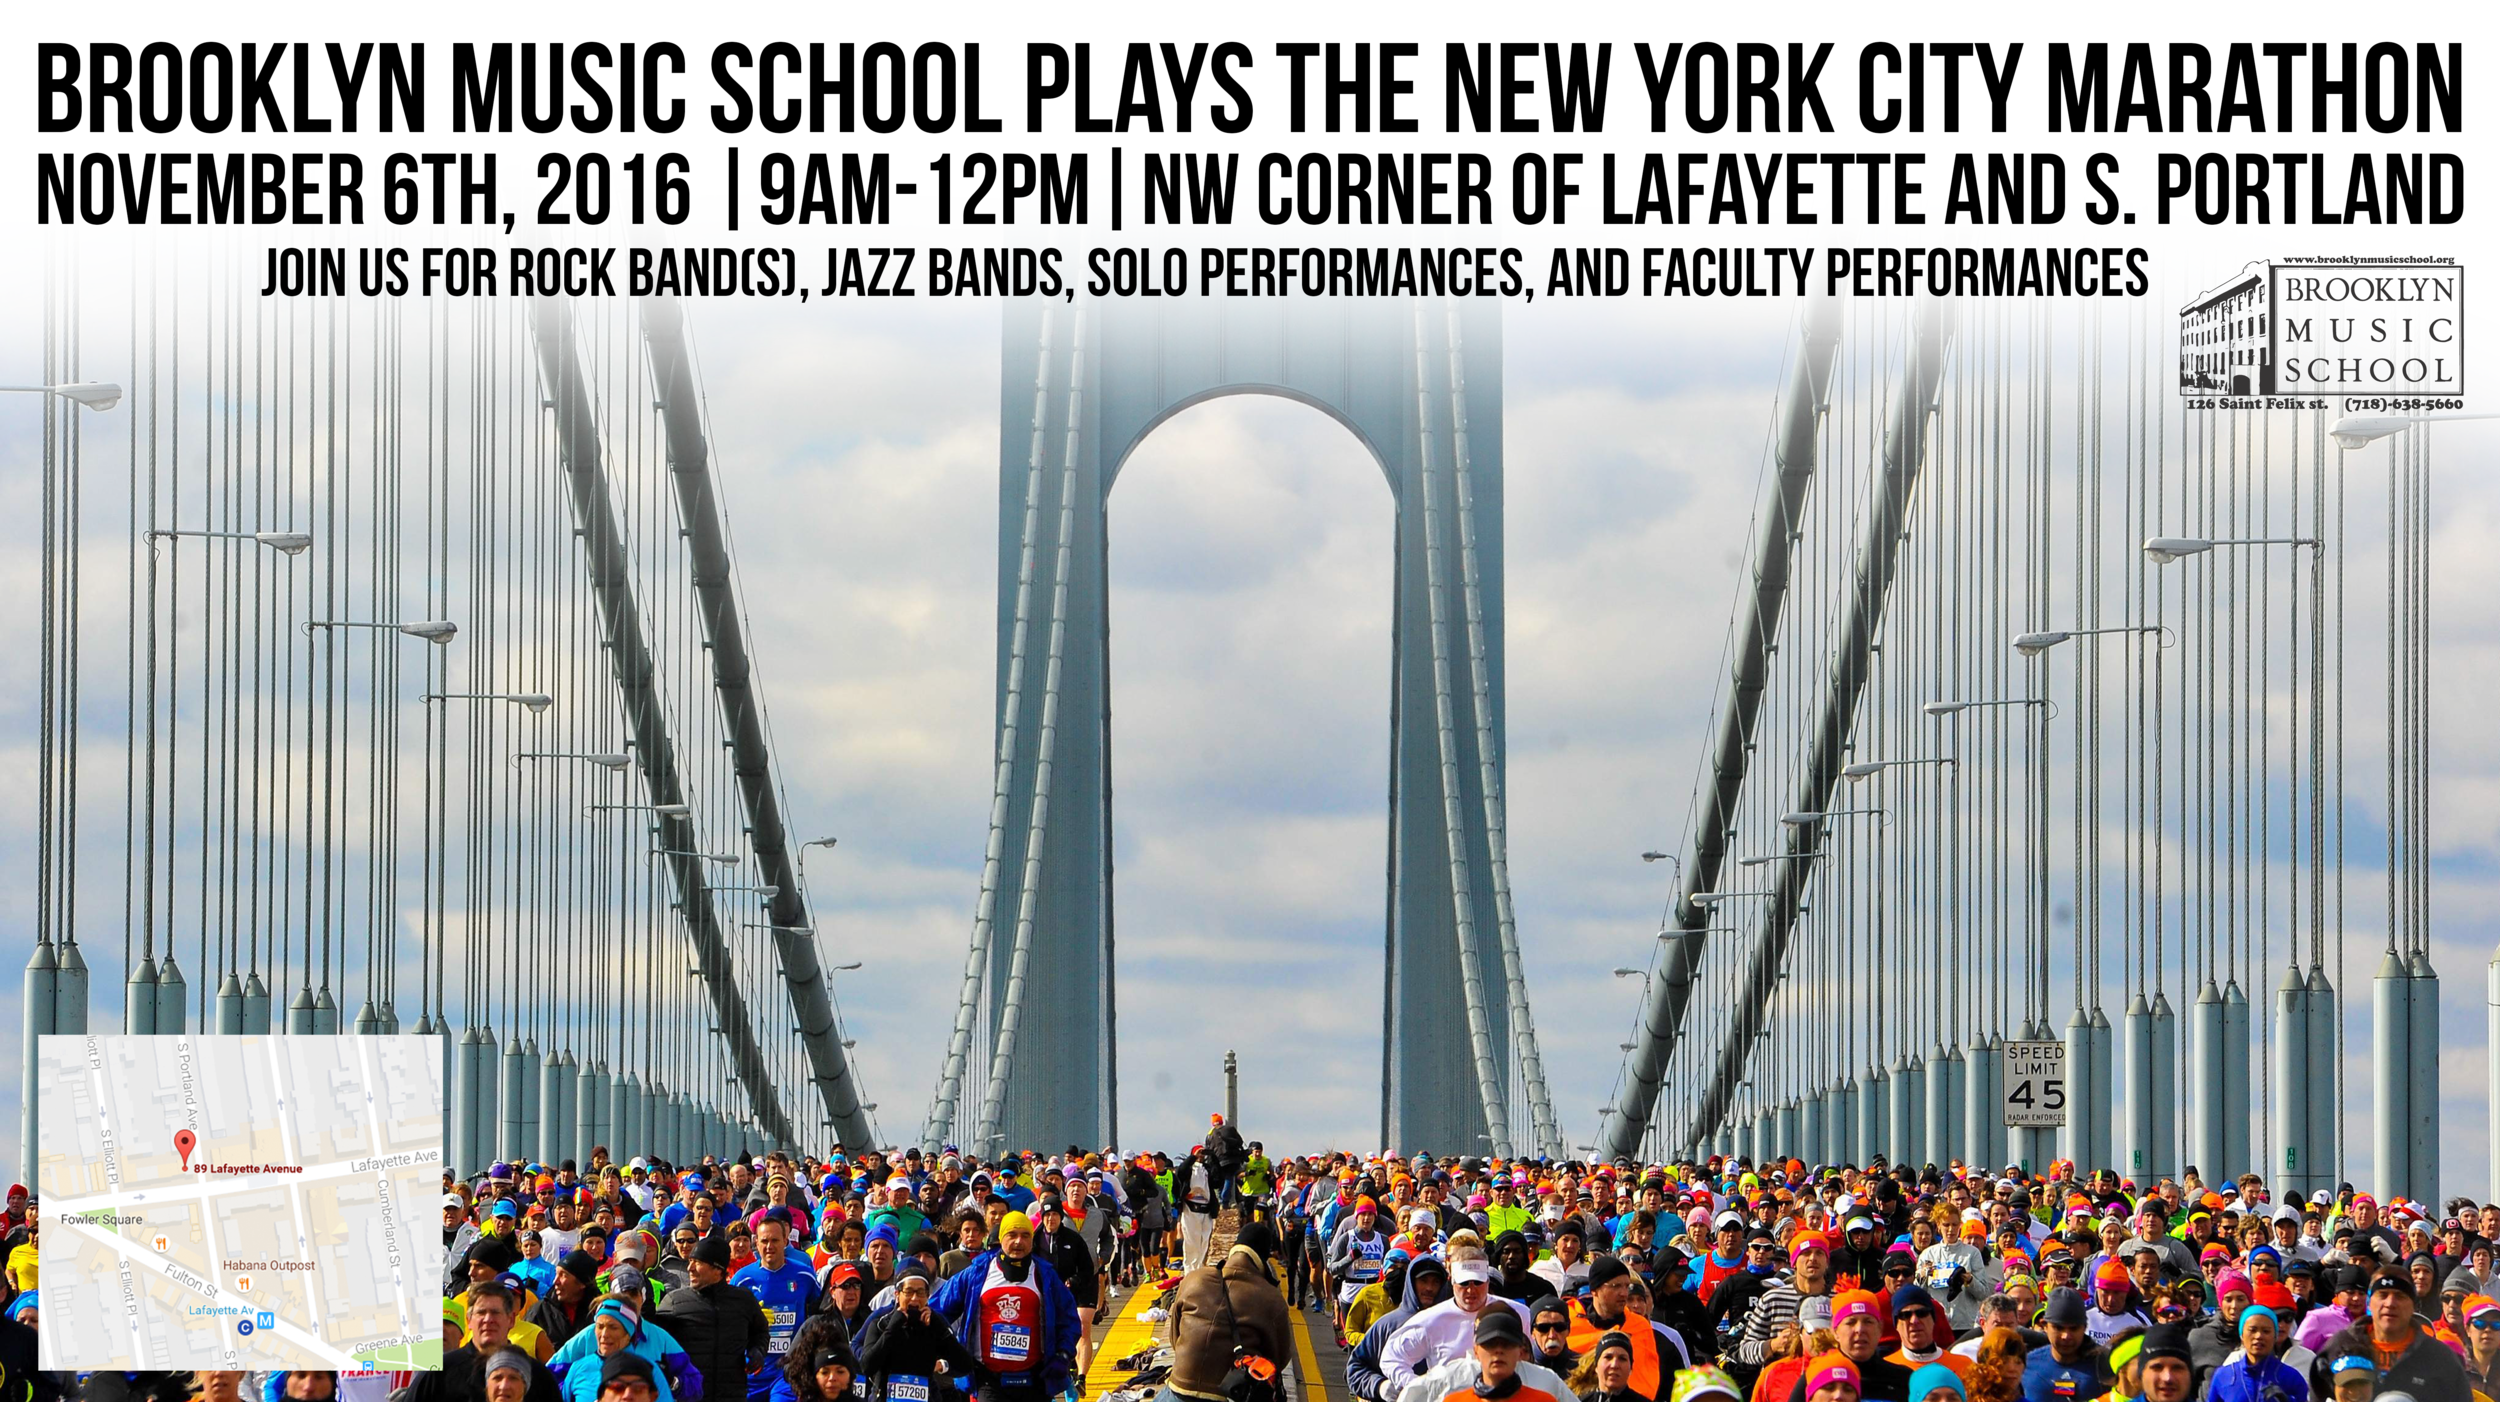 BMS ensembles, soloists, and faculty will be performing at the  Northwest corner of Lafayette and S. Portland  to support runners and viewers participating in the New York City Marathon. Come out and join BMS on  November 6 from  9am-12pm  to support our school and one of the greatest New York traditions.